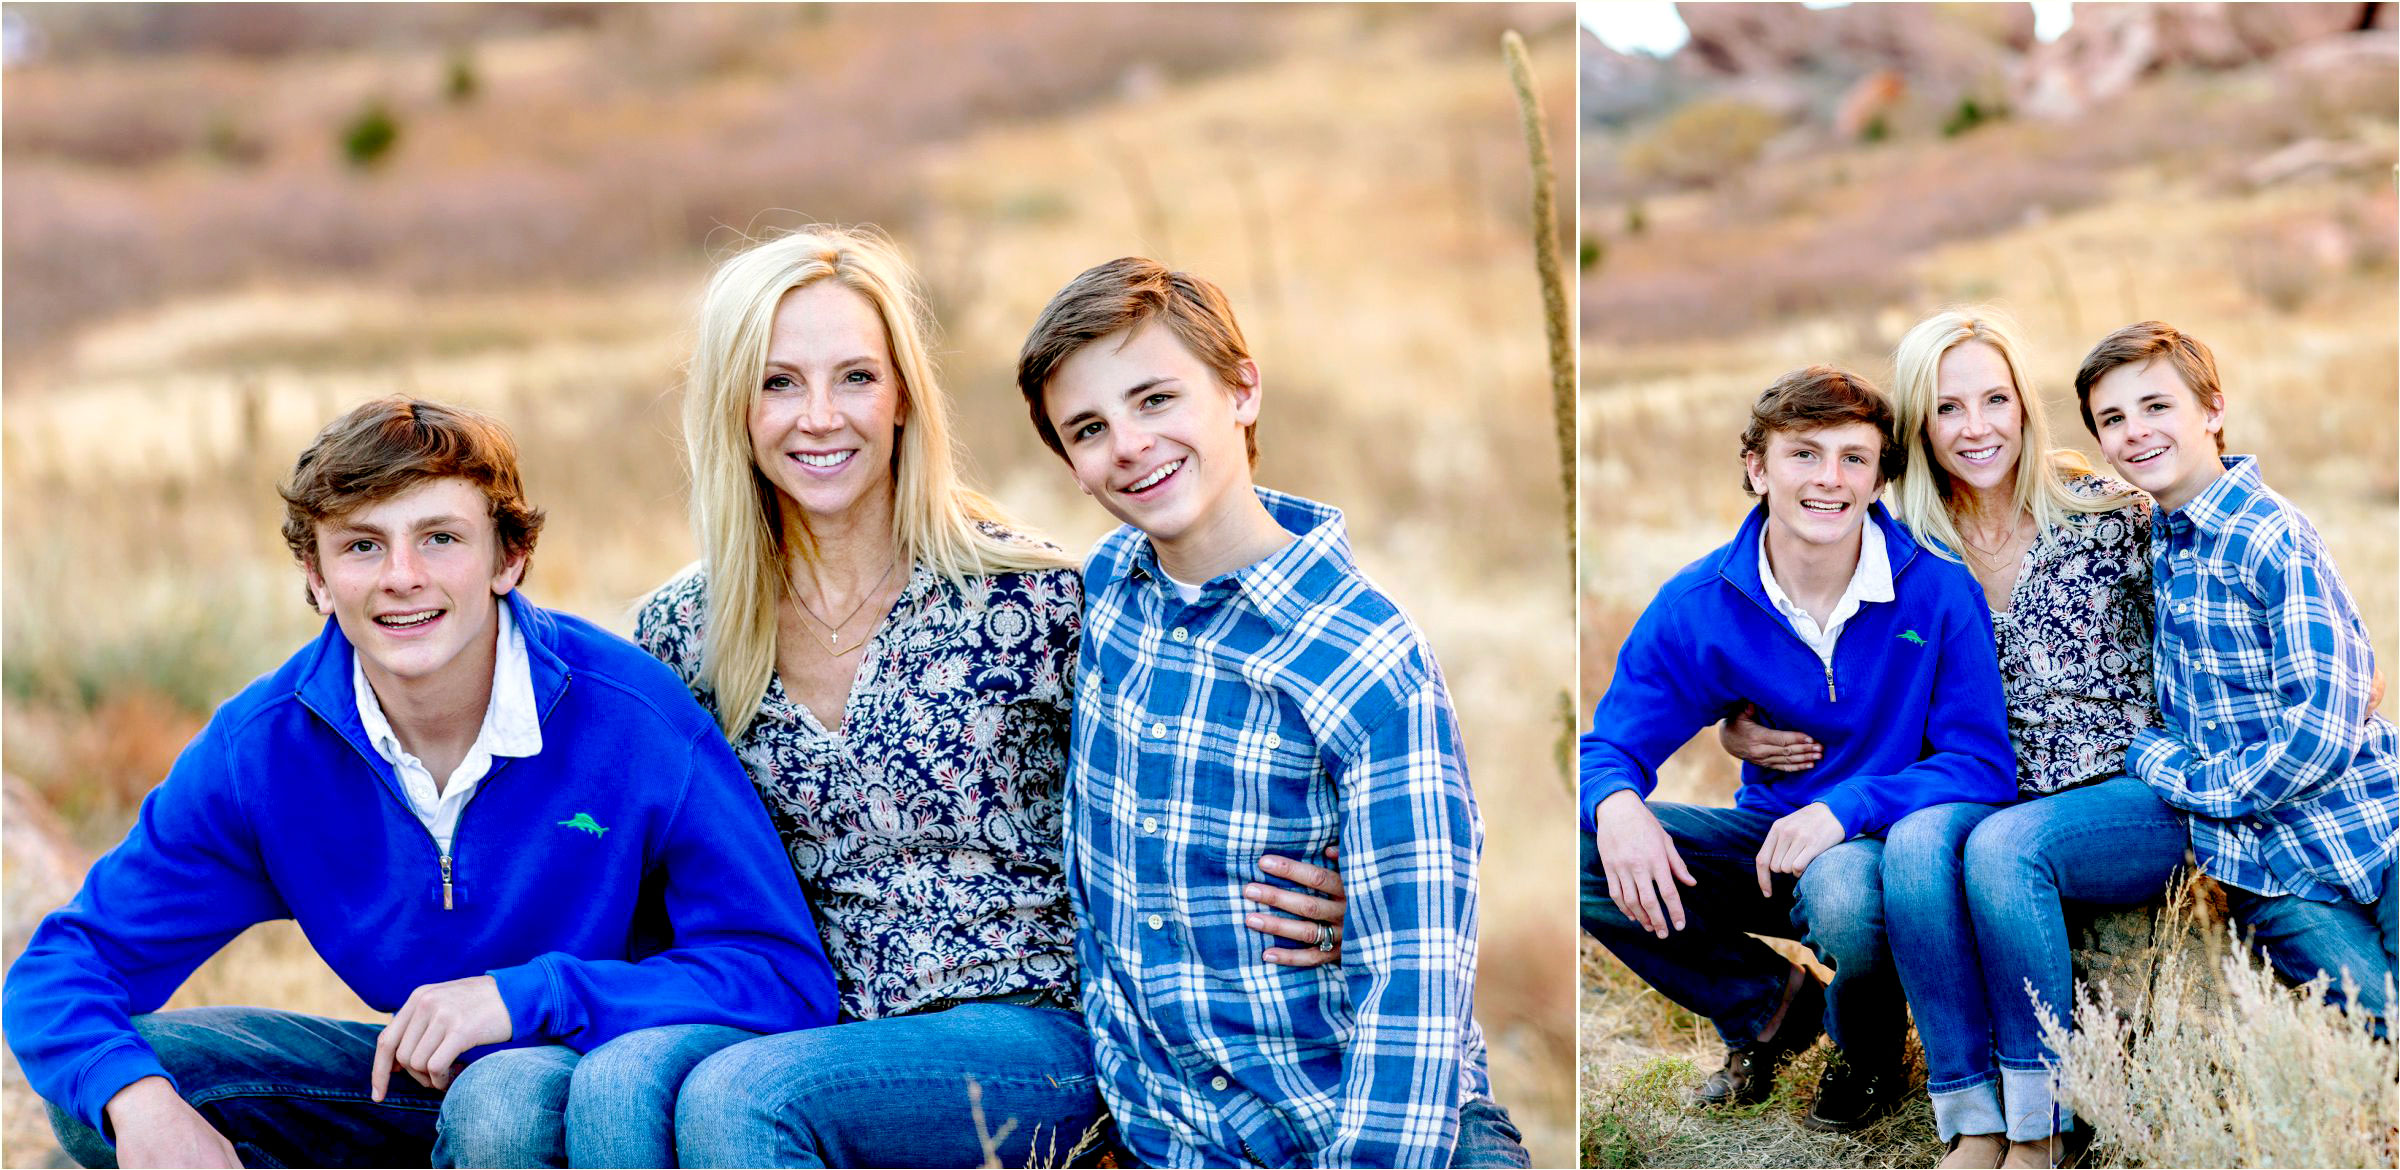 mother-and-her-sons-pose-in-the-wilds-of-red-rocks-during-photo-shoot-006